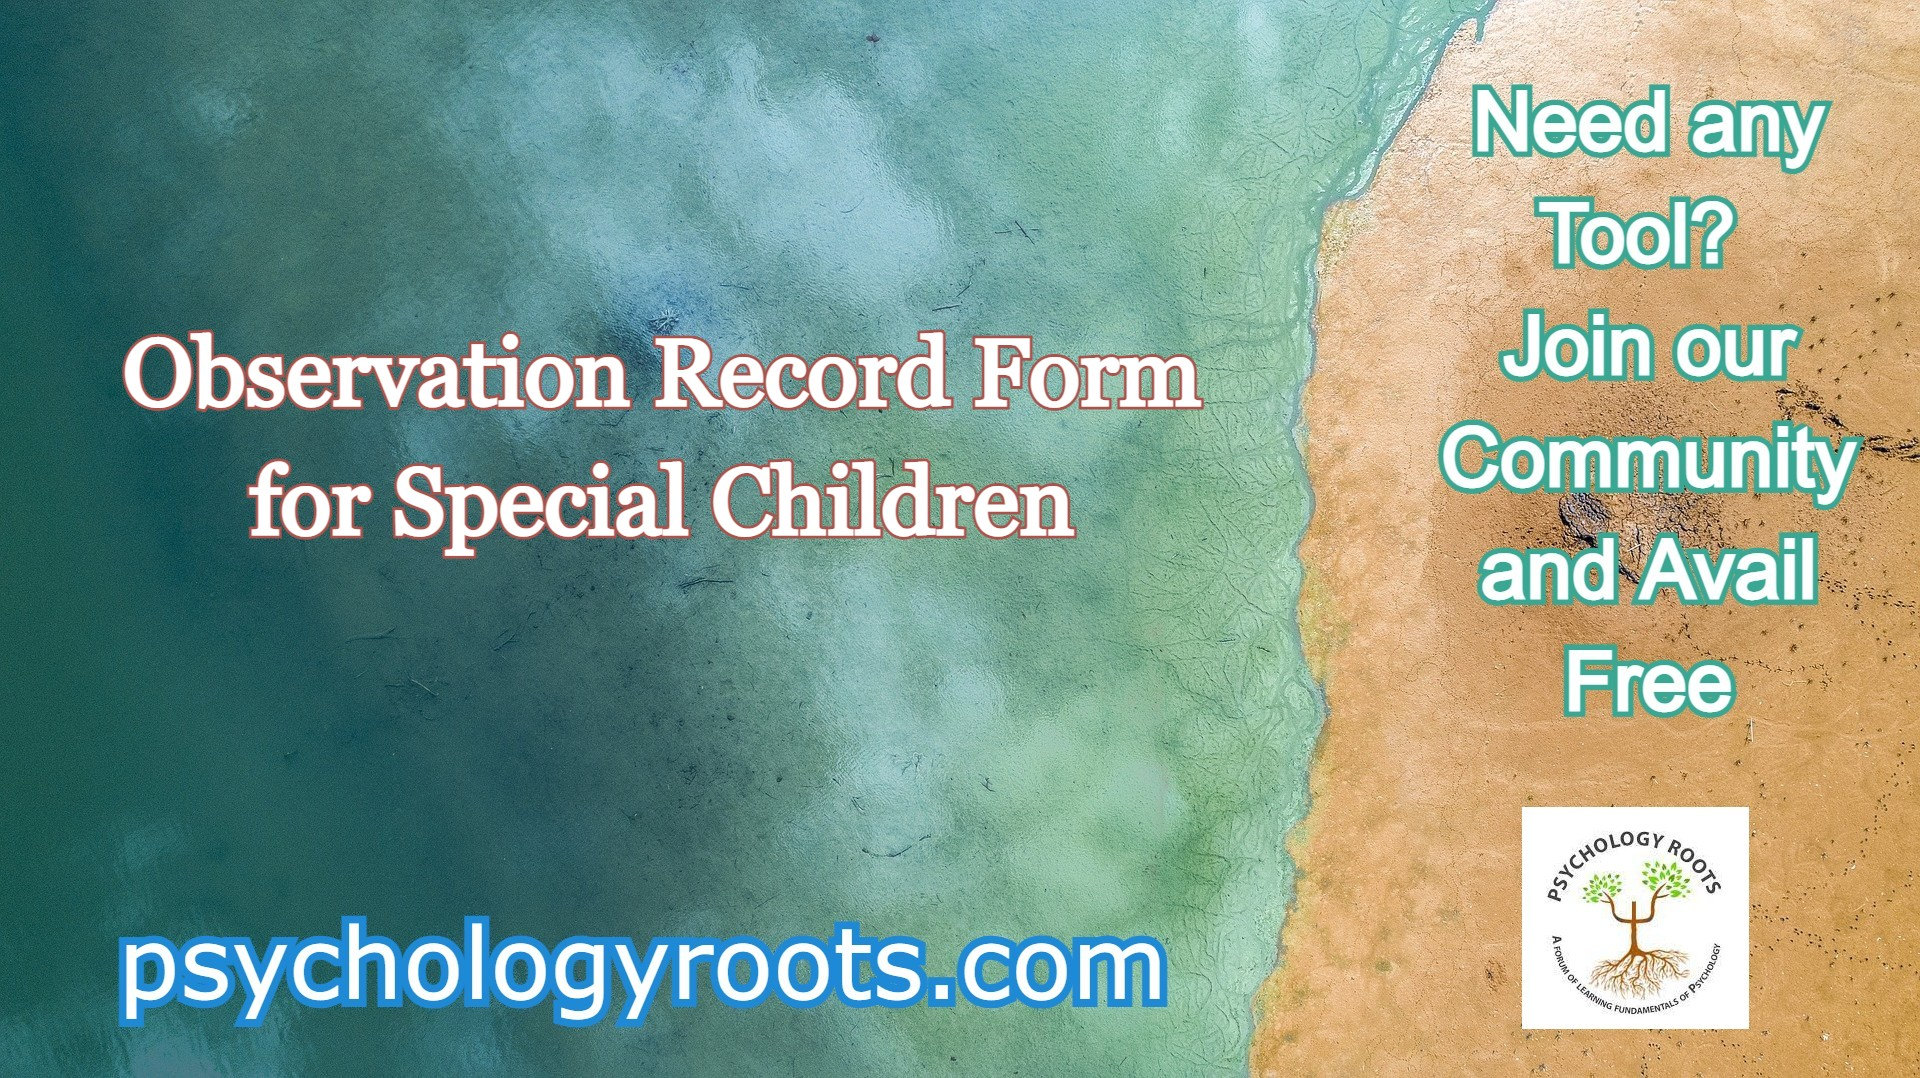 Observation Record Form for Special Children